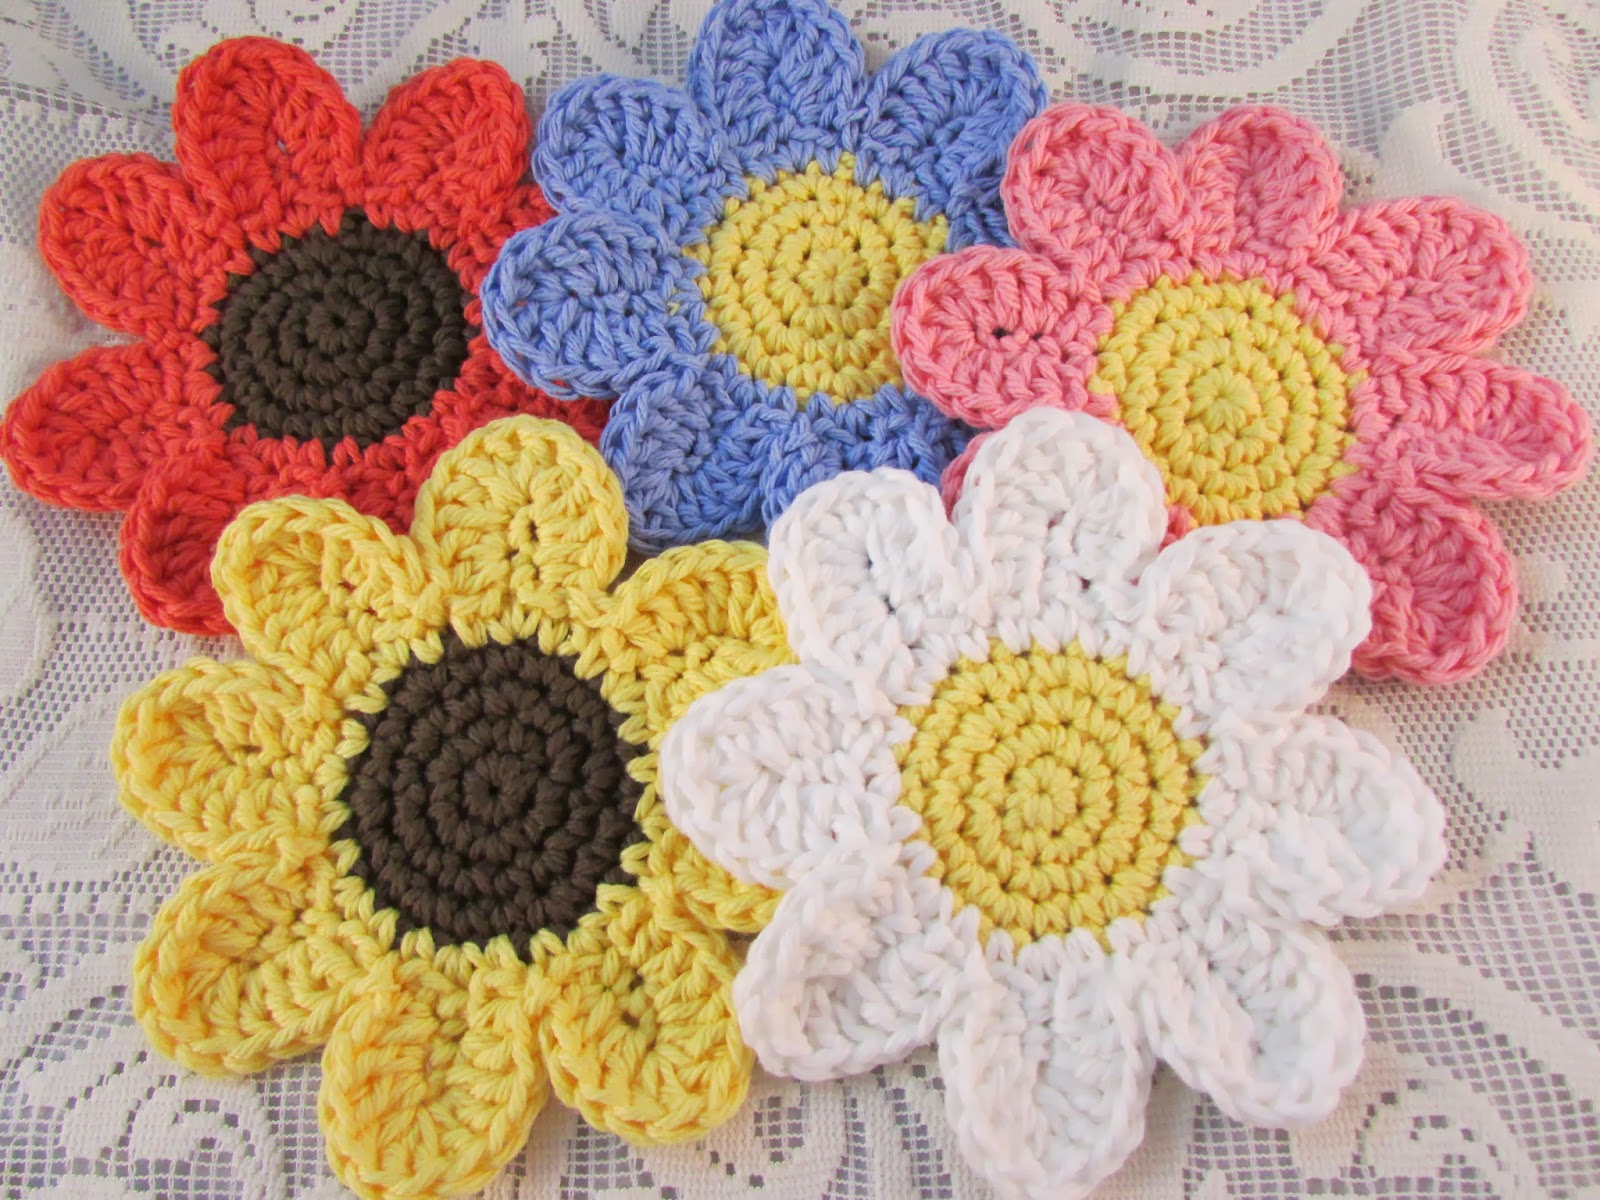 Nancy Drew Designs: Crocheted daisies and spring fever